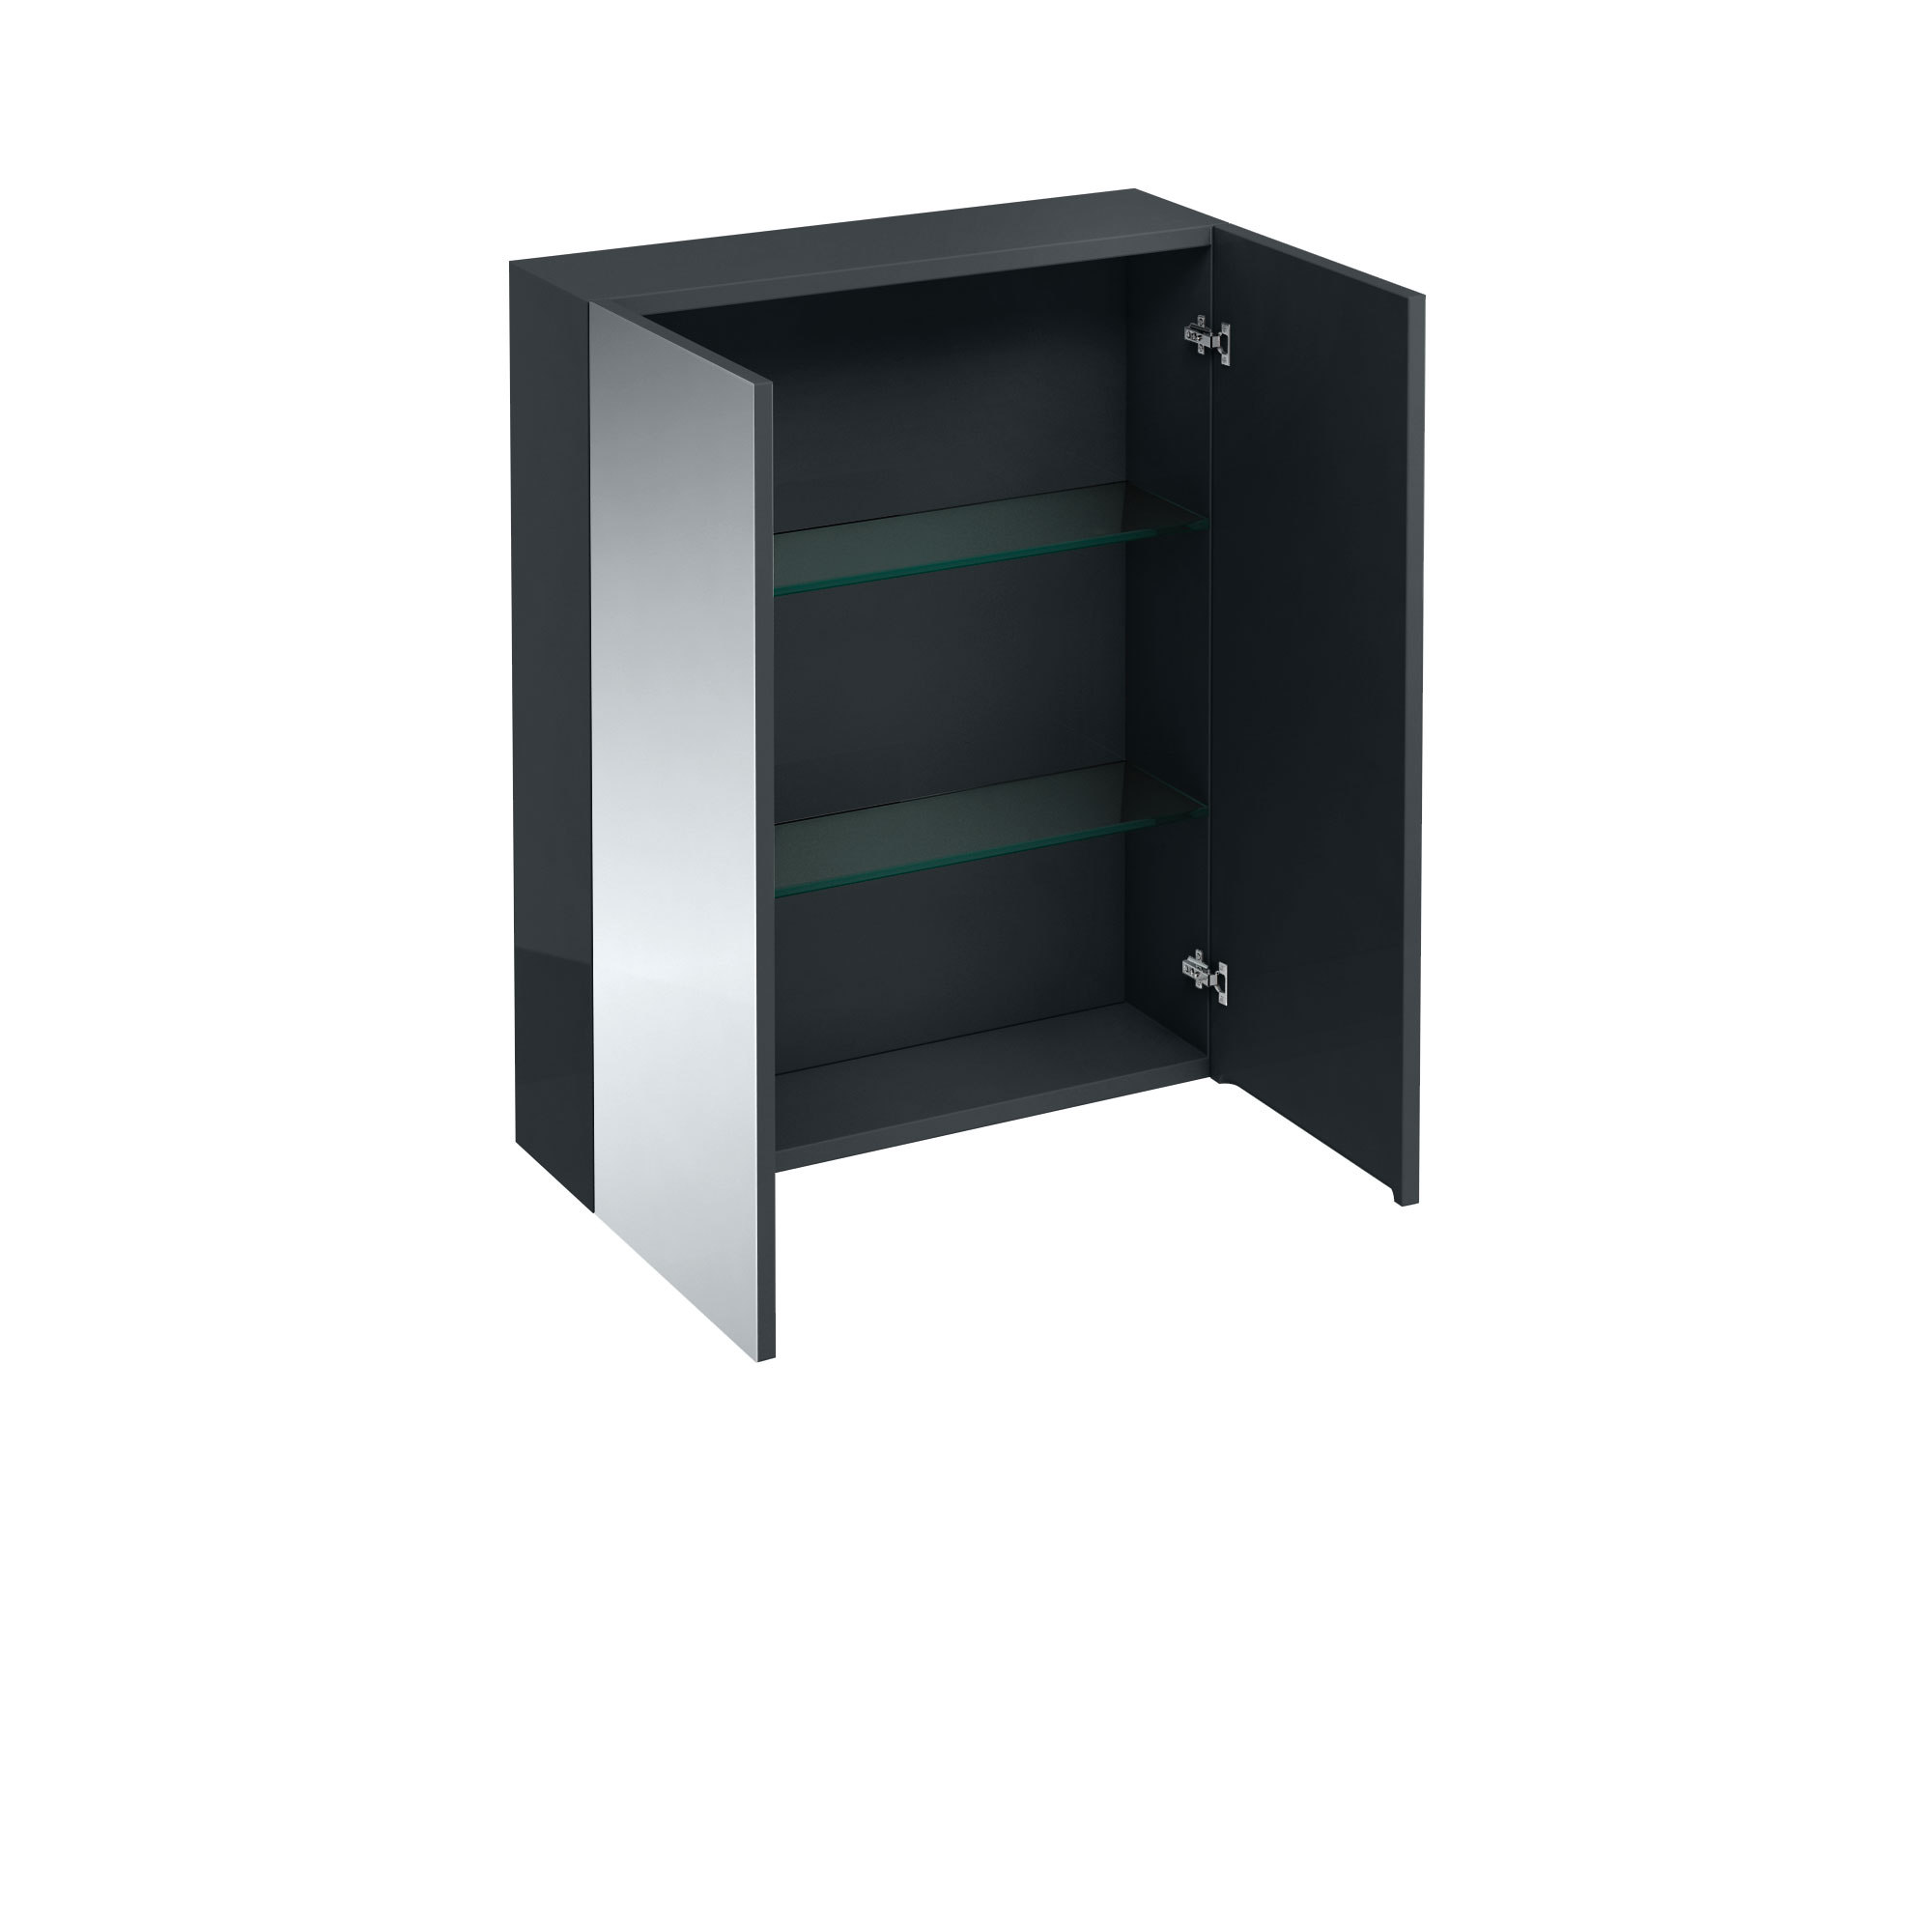 click on Double Door Wall Unit with Mirrored Doors image to enlarge